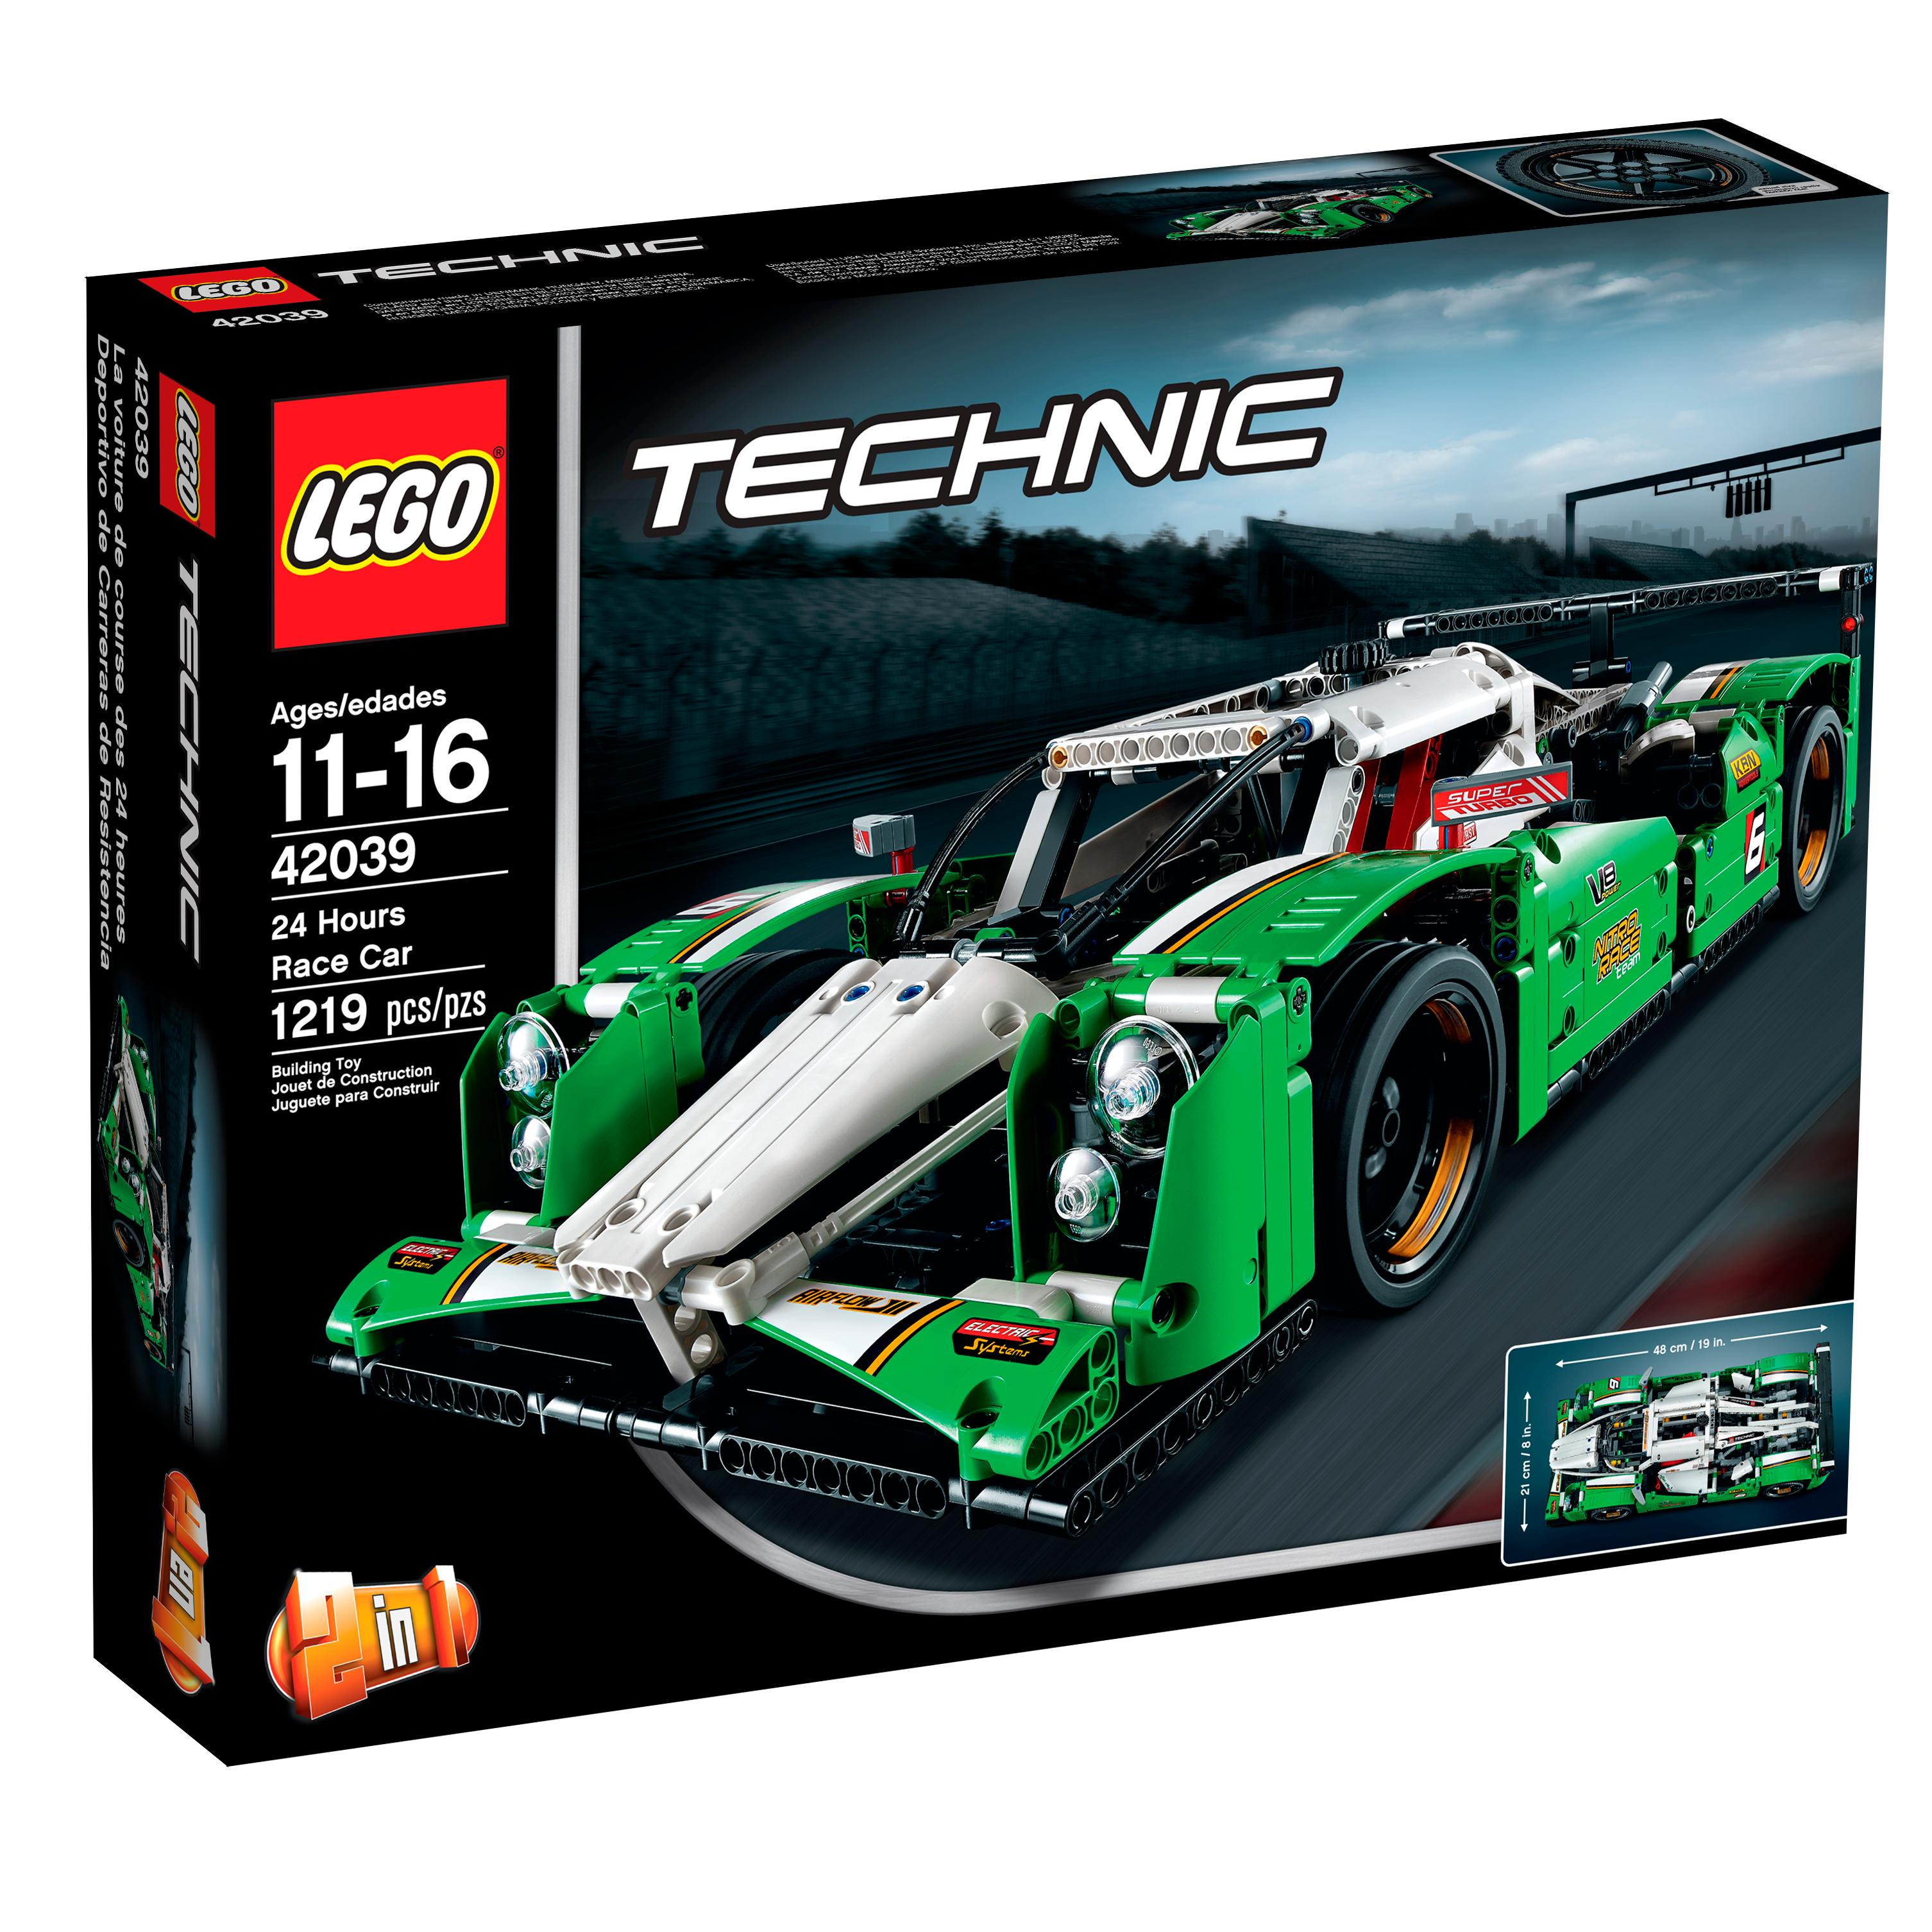 lego technic 24 hours race car toys games. Black Bedroom Furniture Sets. Home Design Ideas